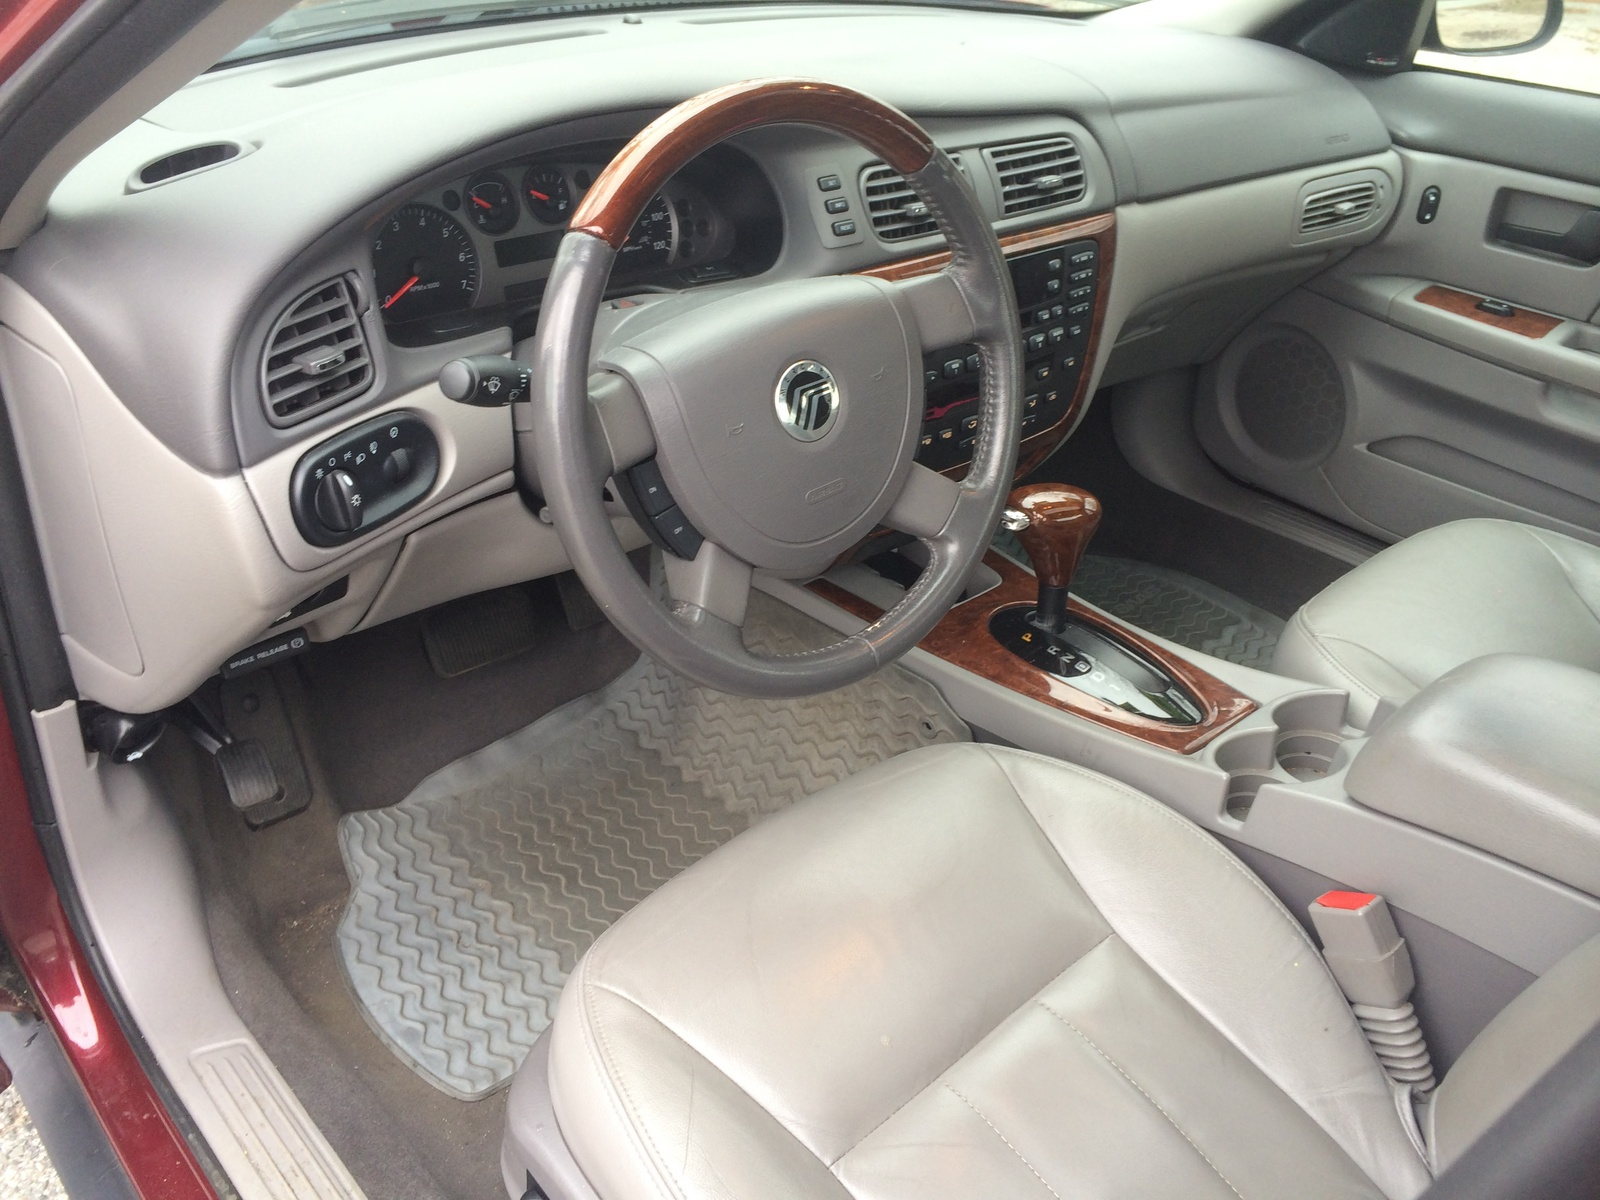 2005 Mercury Sable - Interior Pictures